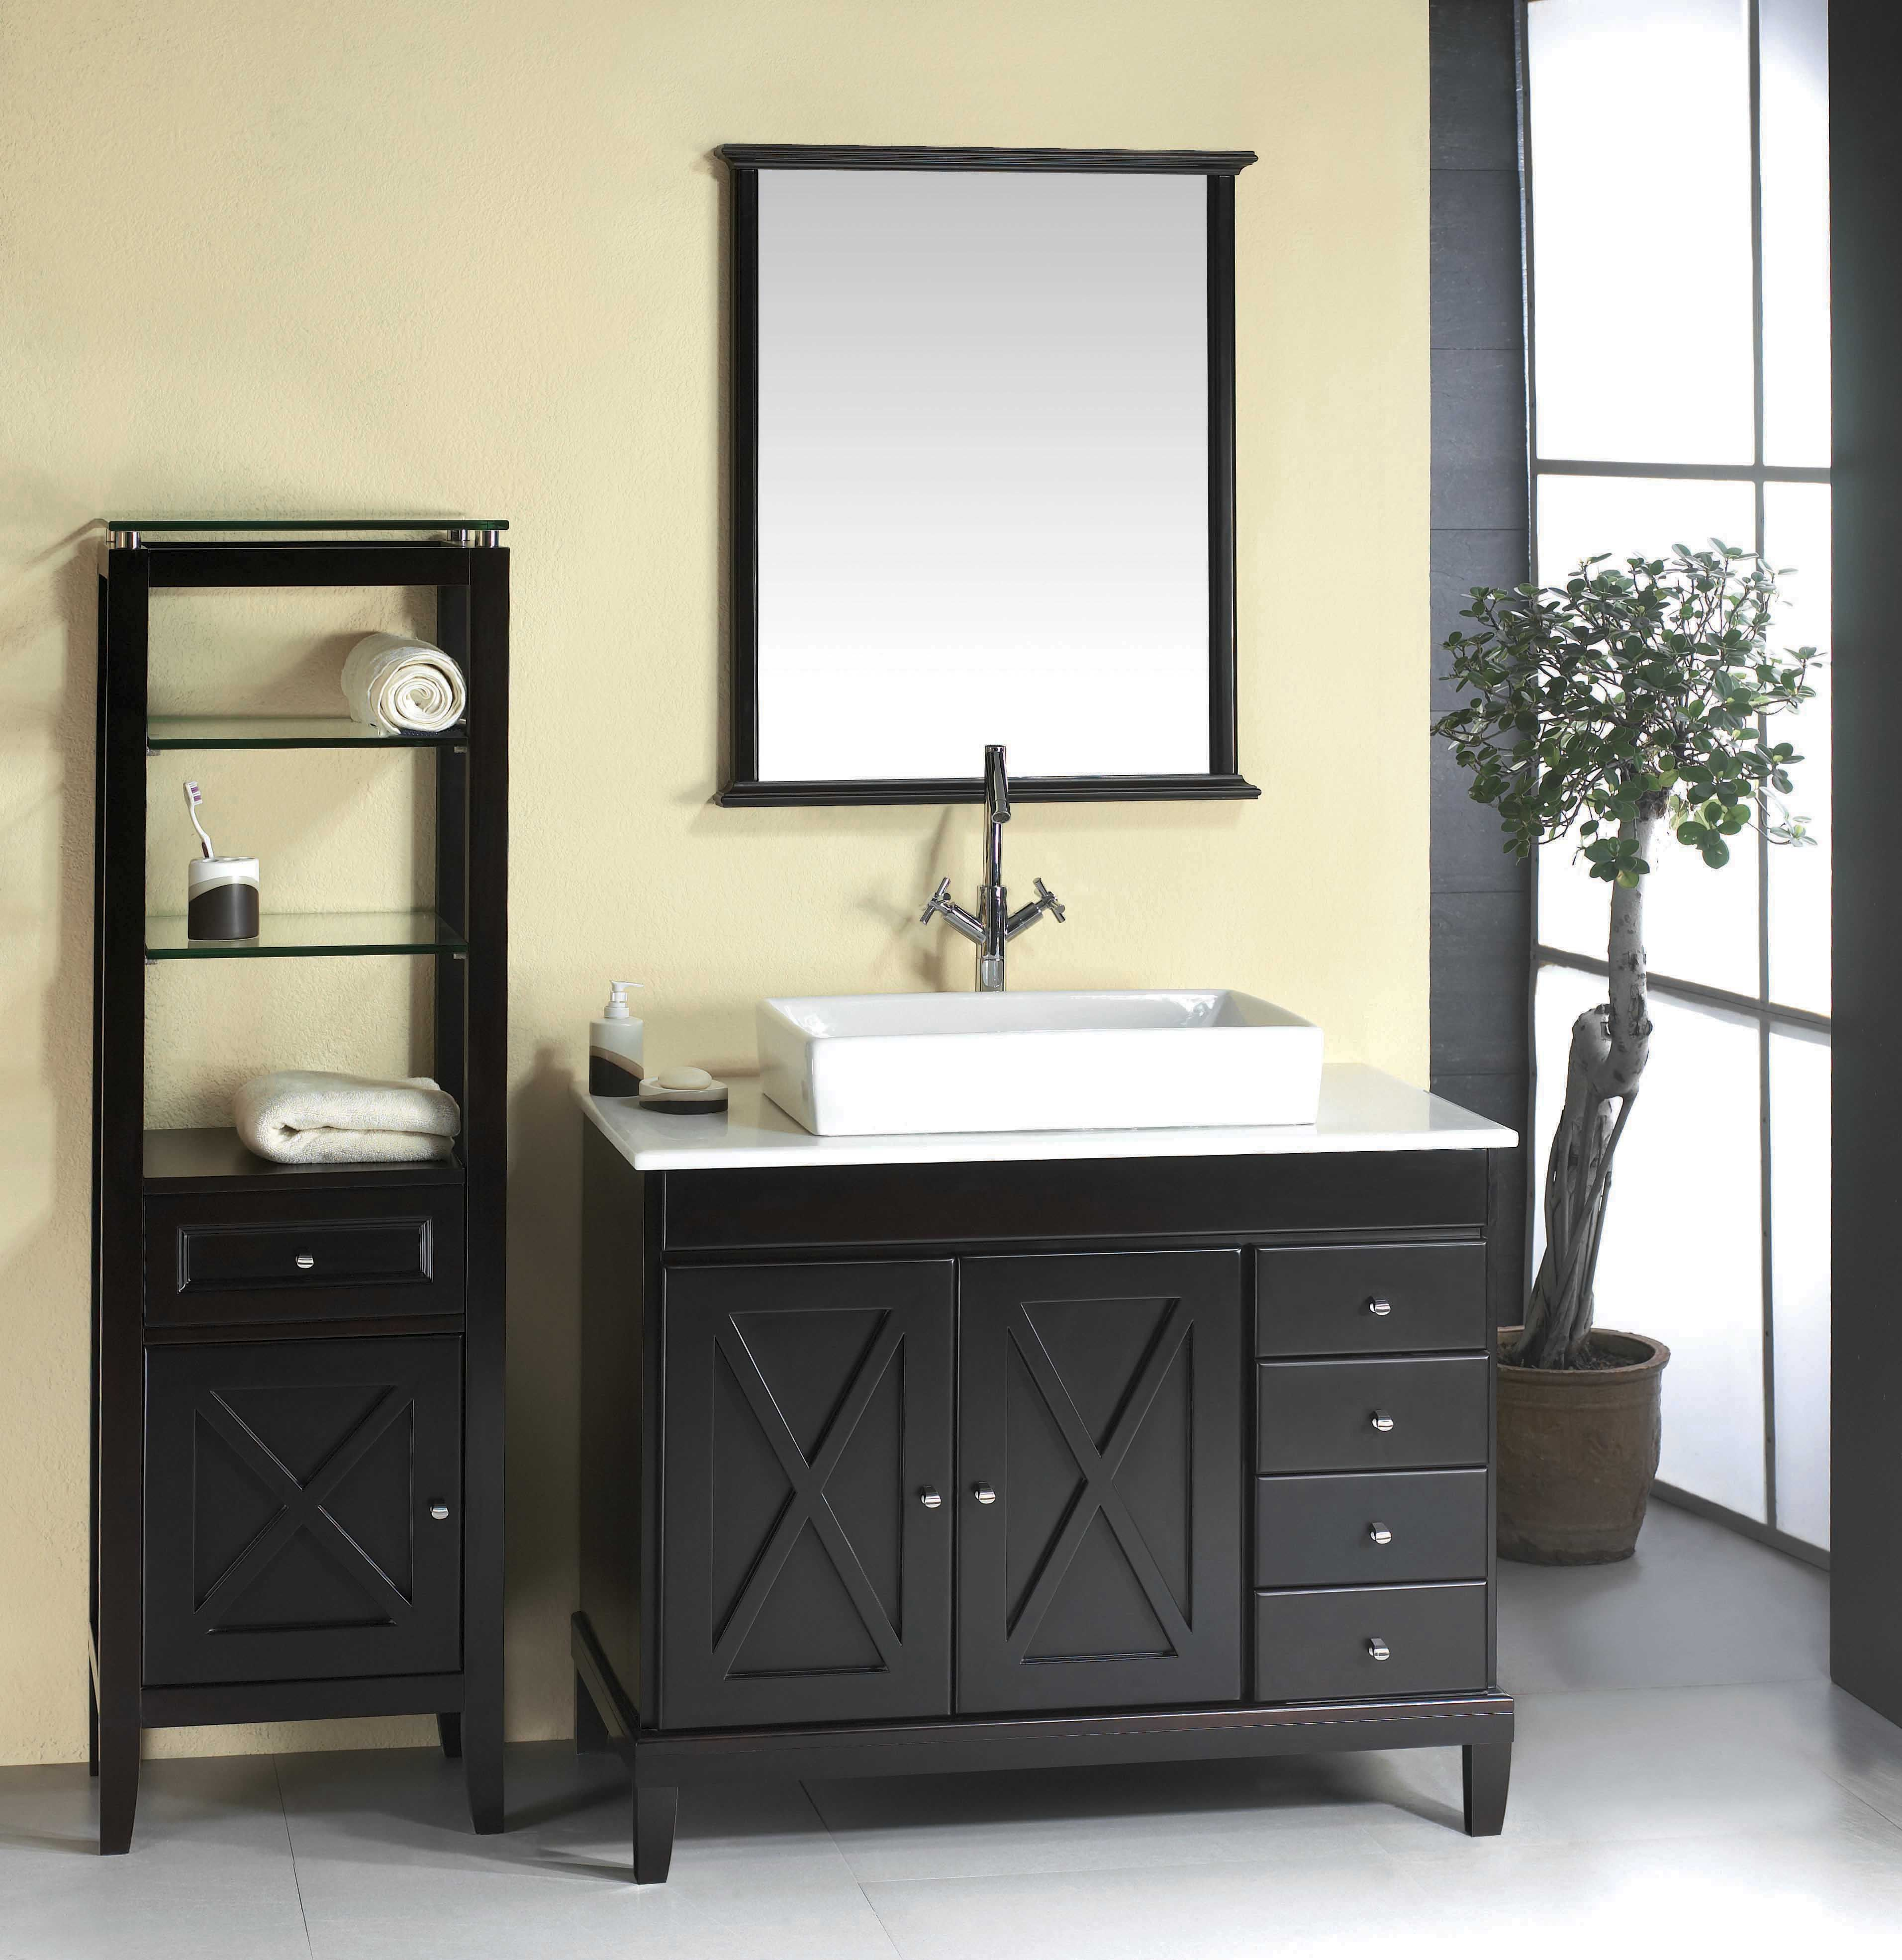 Best The Barcelona 40 Vanity Features Hardwood Furniture With 400 x 300